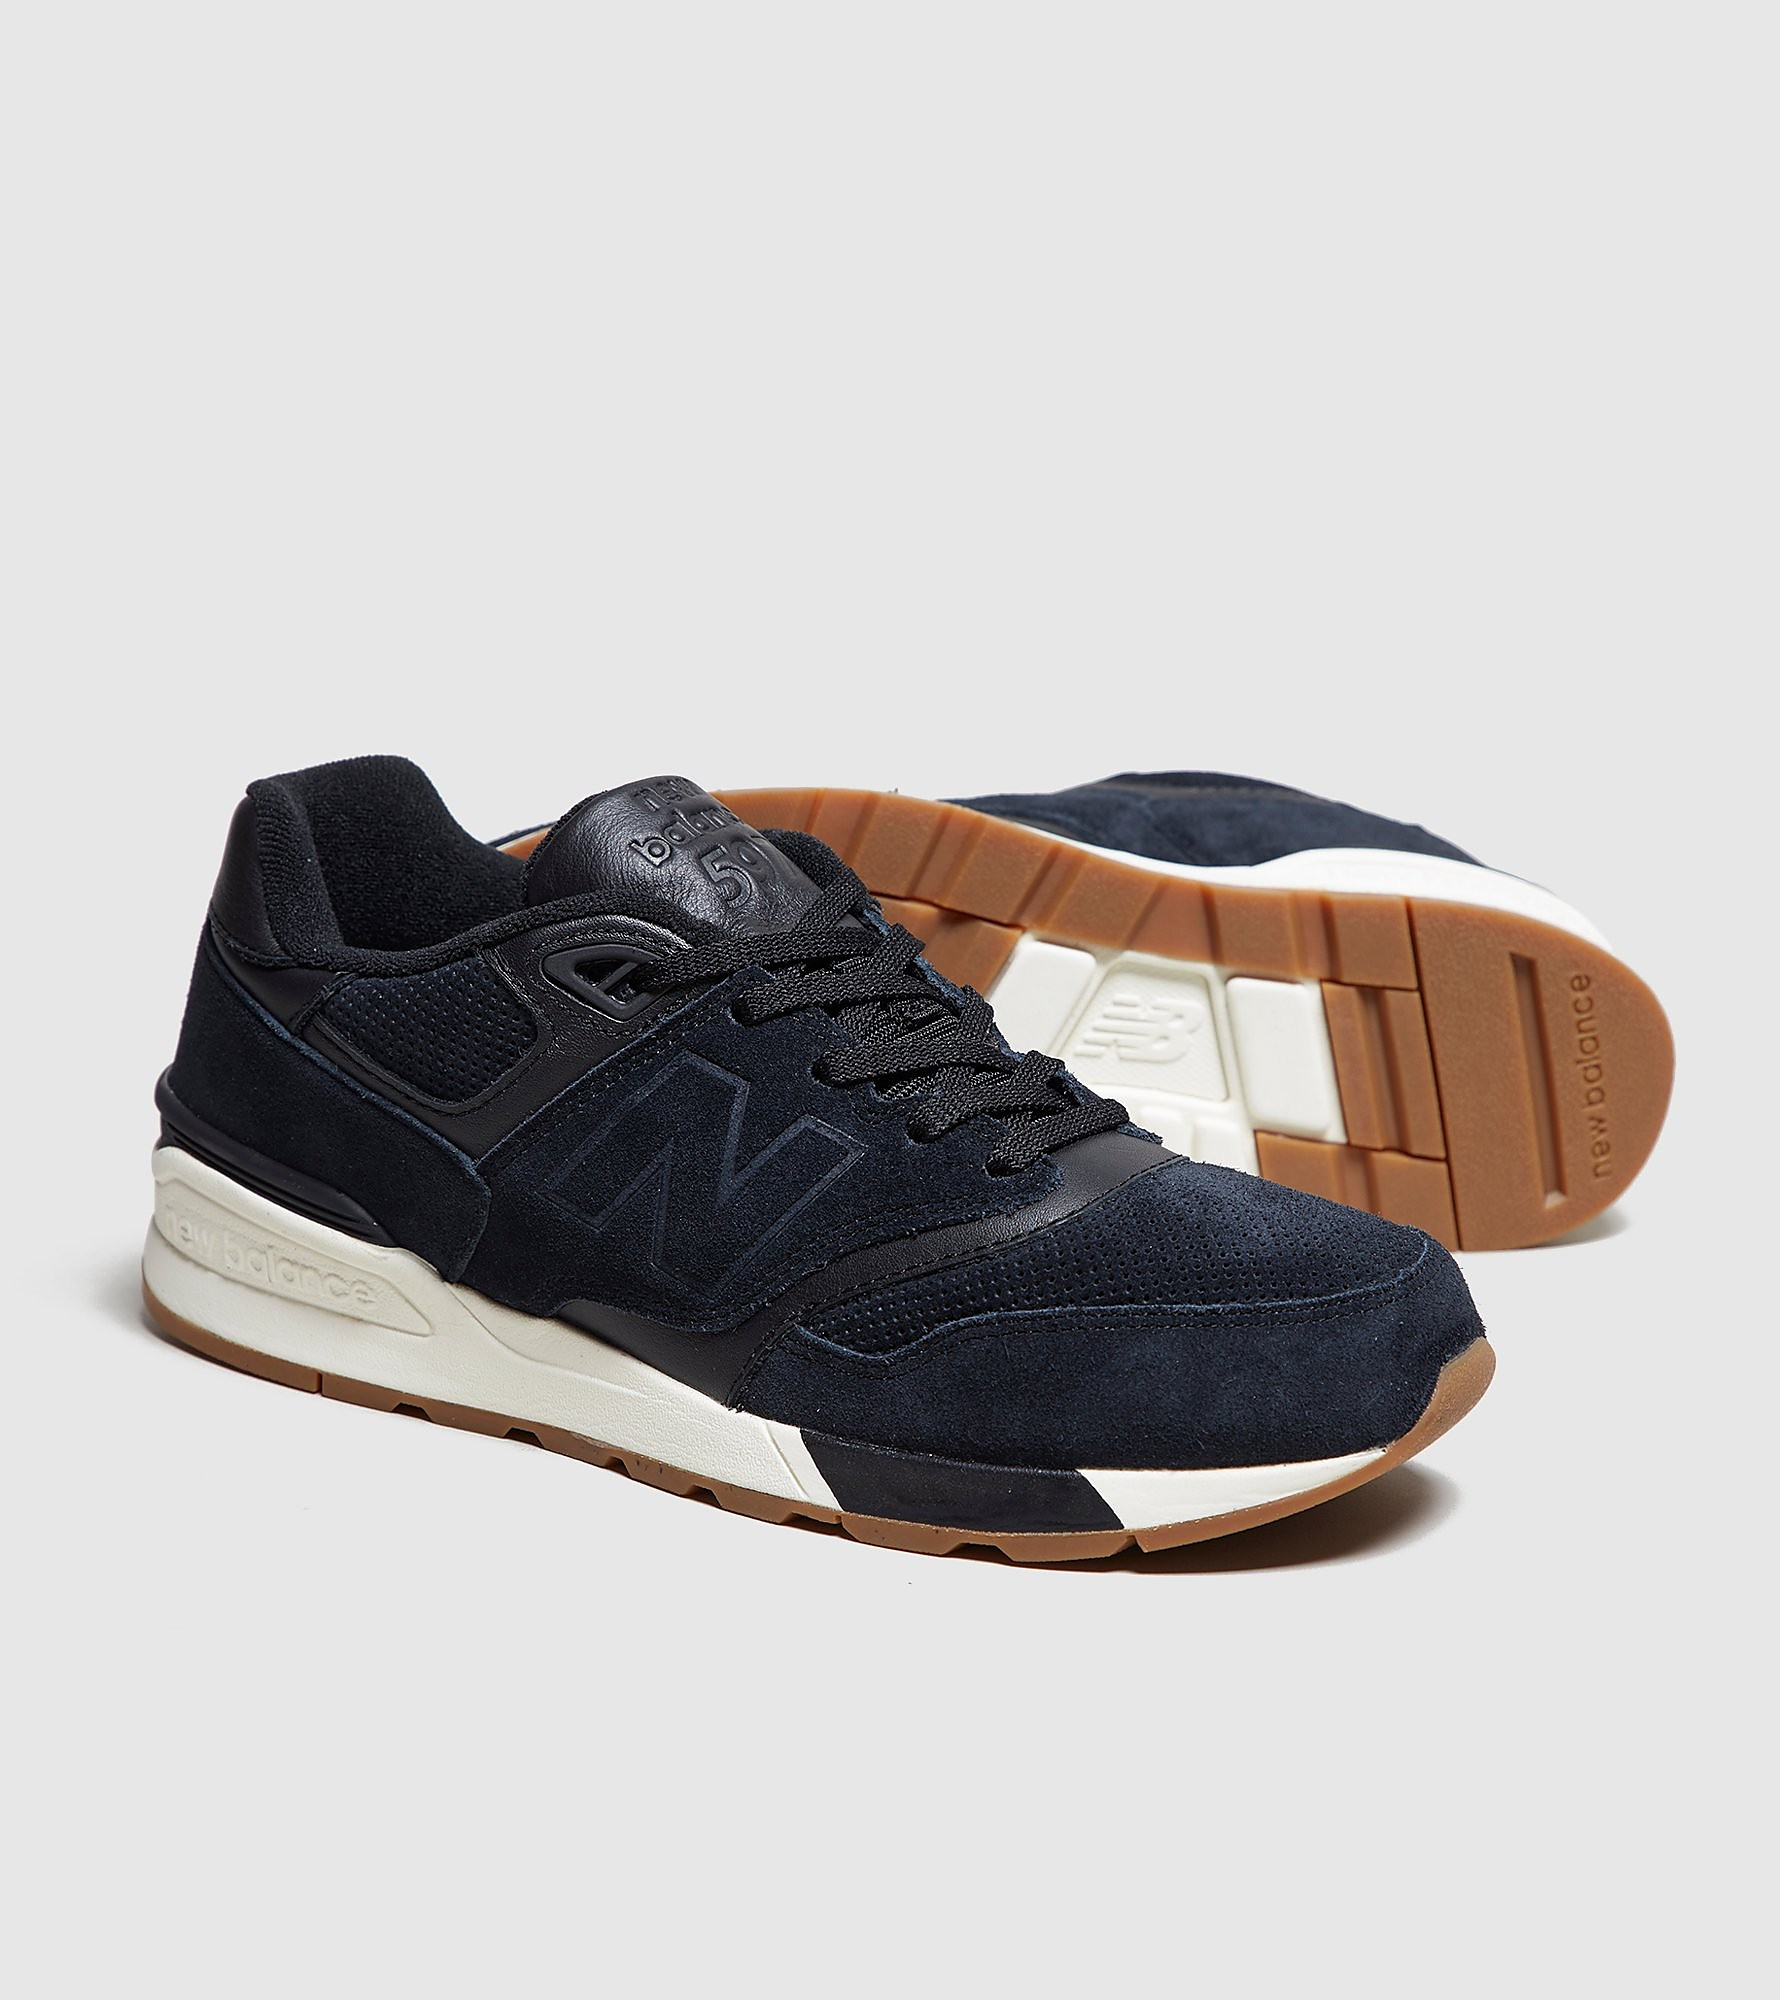 New Balance 597 Suede